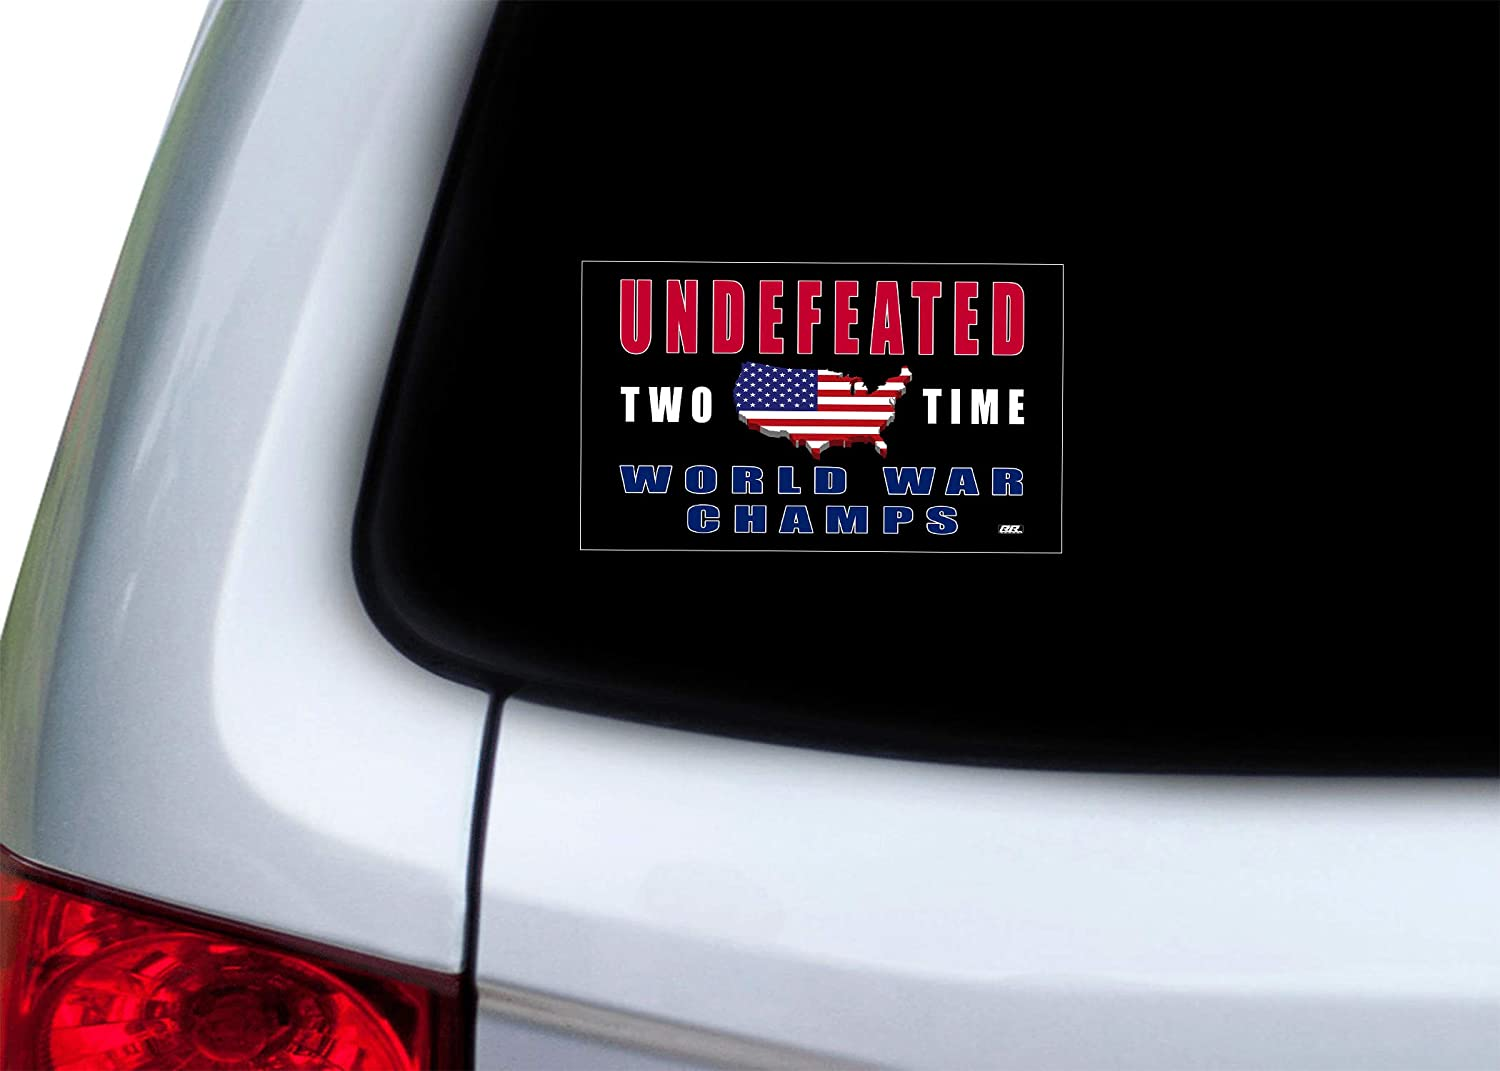 Rogue River Tactical Funny USA Flag Undefeated Two Time World War Champs Patriotic Car Truck Bumper Sticker Vinyl Decal US Military Veteran